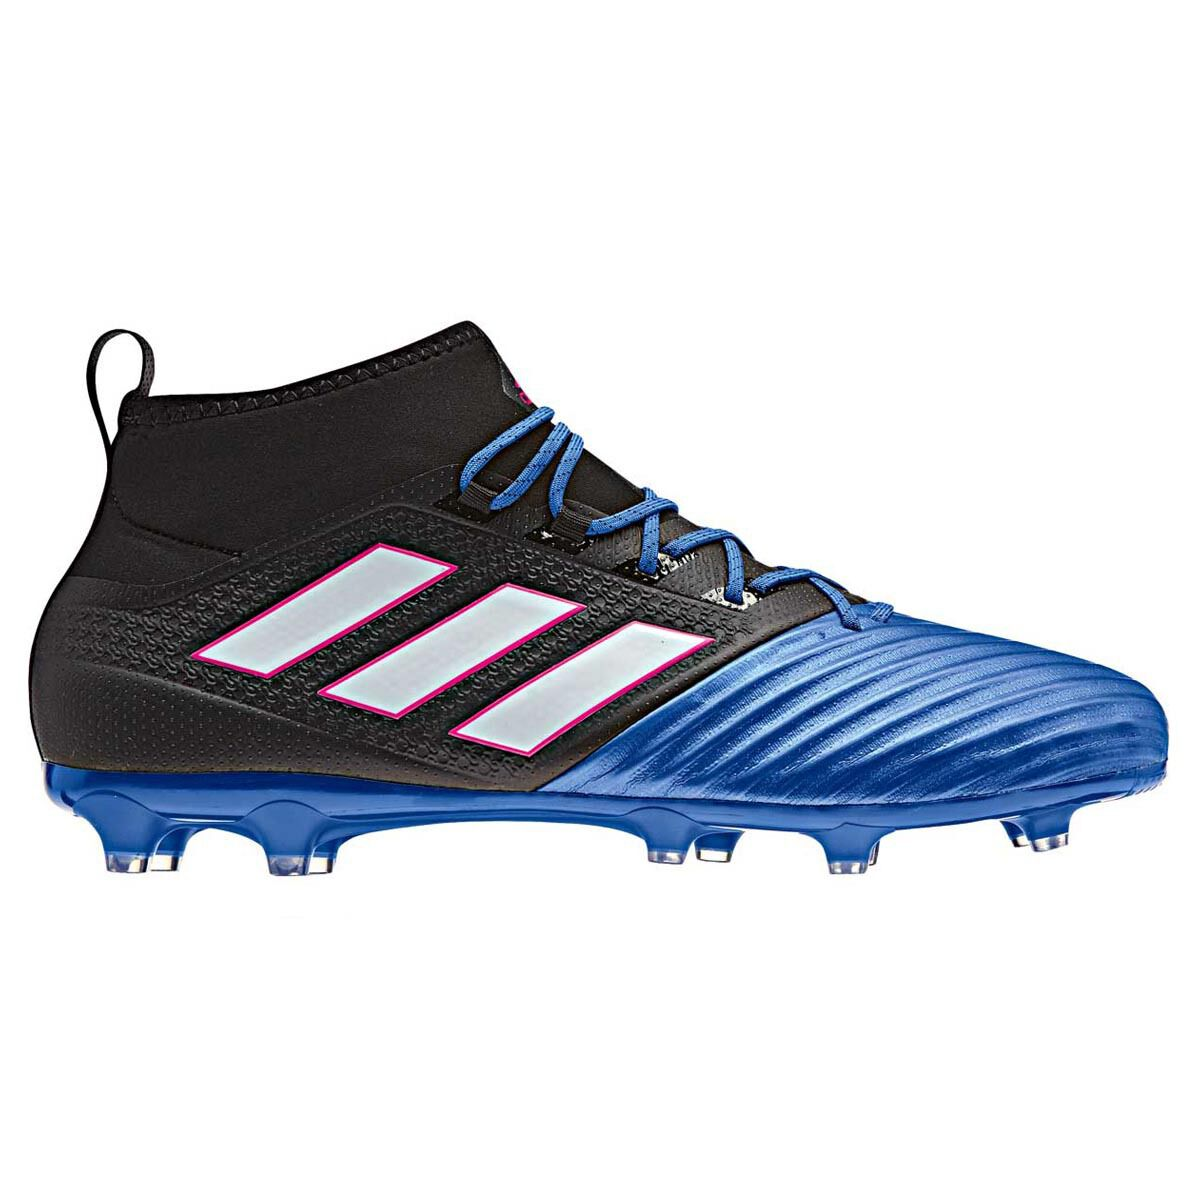 newest 52d4d aec7e ... ireland adidas ace 17.2 primemesh mens football boots black blue us 11  adult black 45f4c e90e6